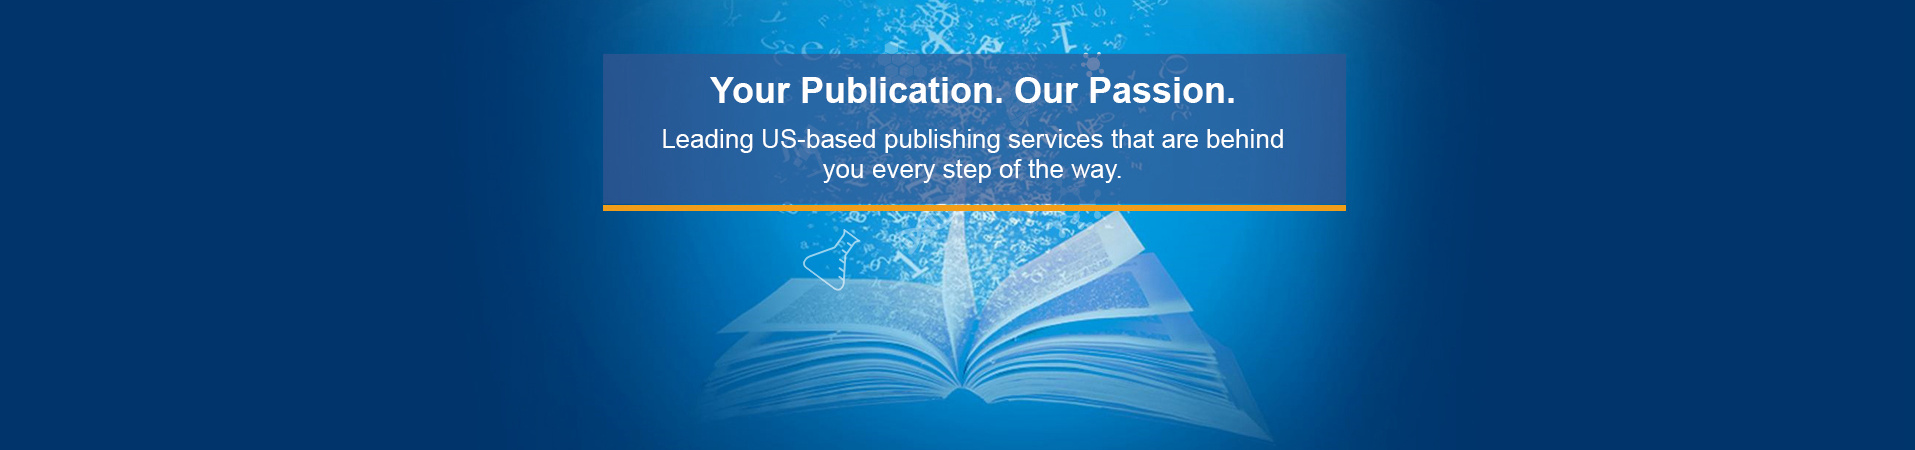 Your publication, our passion. Leading US-based publishing services that are behind you every step of the way.